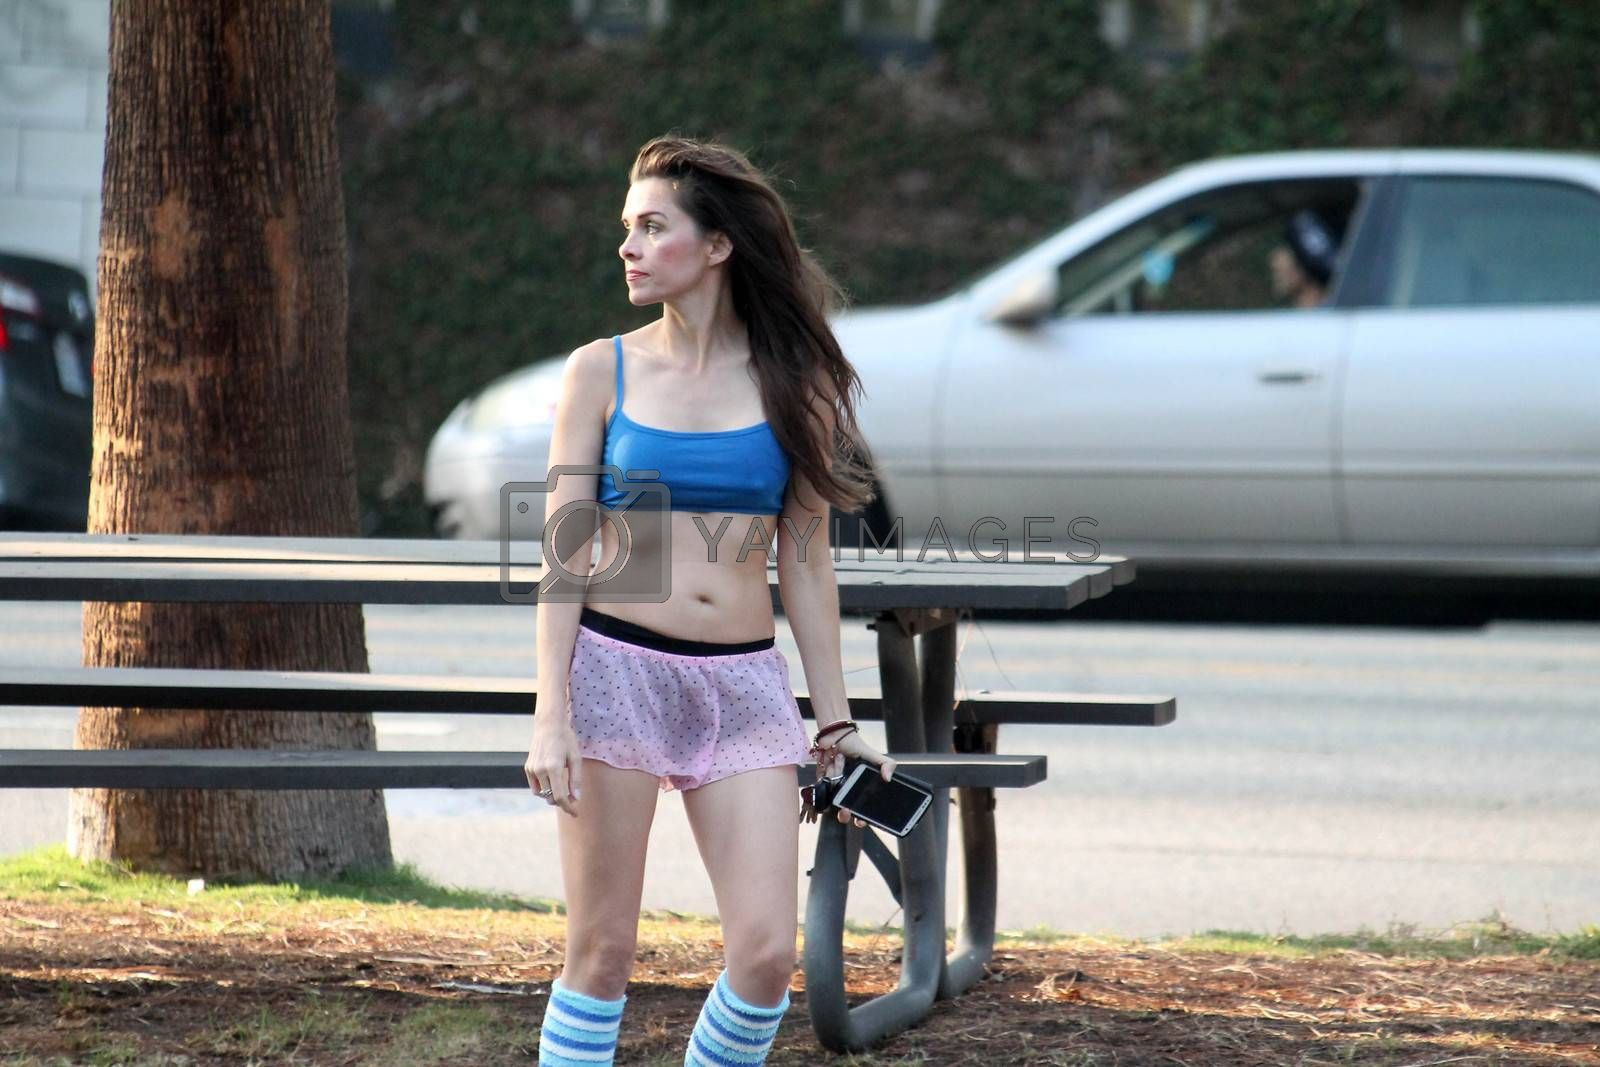 Alicia Arden leaves Yoga class and flashes some bizarre underwear while changing at her car, Los Angeles, CA 12-05-16